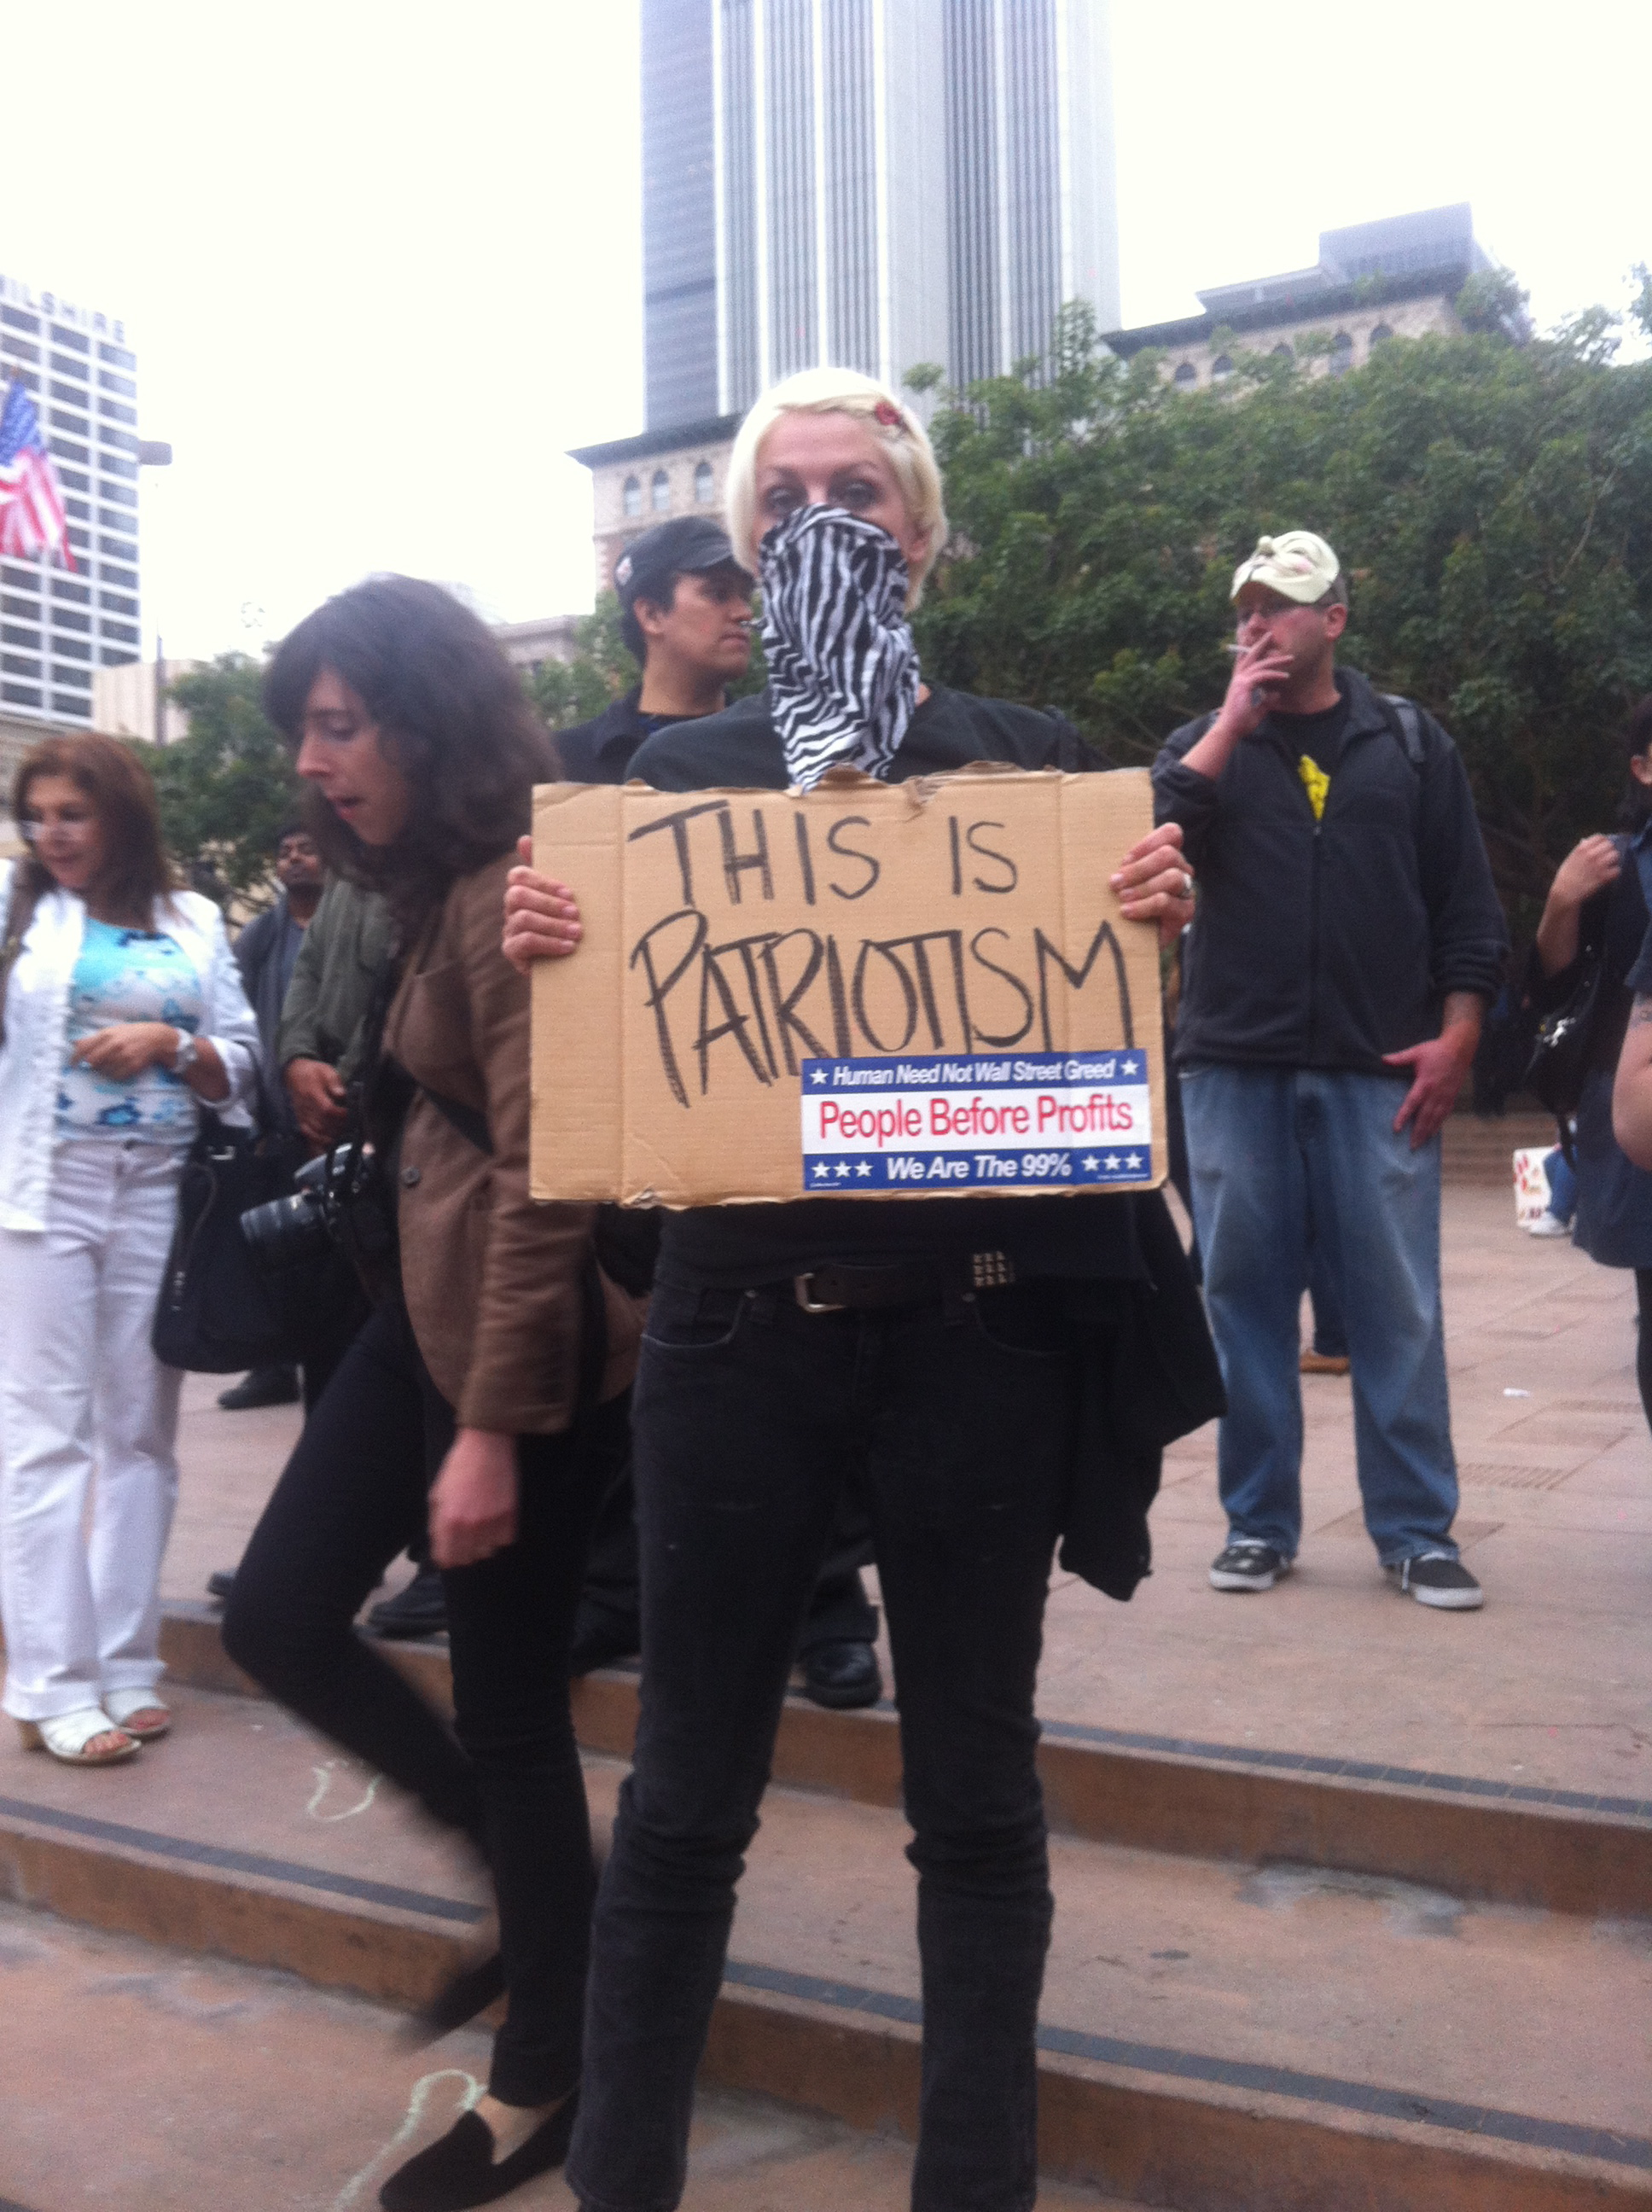 Haley Callis, Occupy LA protester. Photo by Alexandra Woodruff.